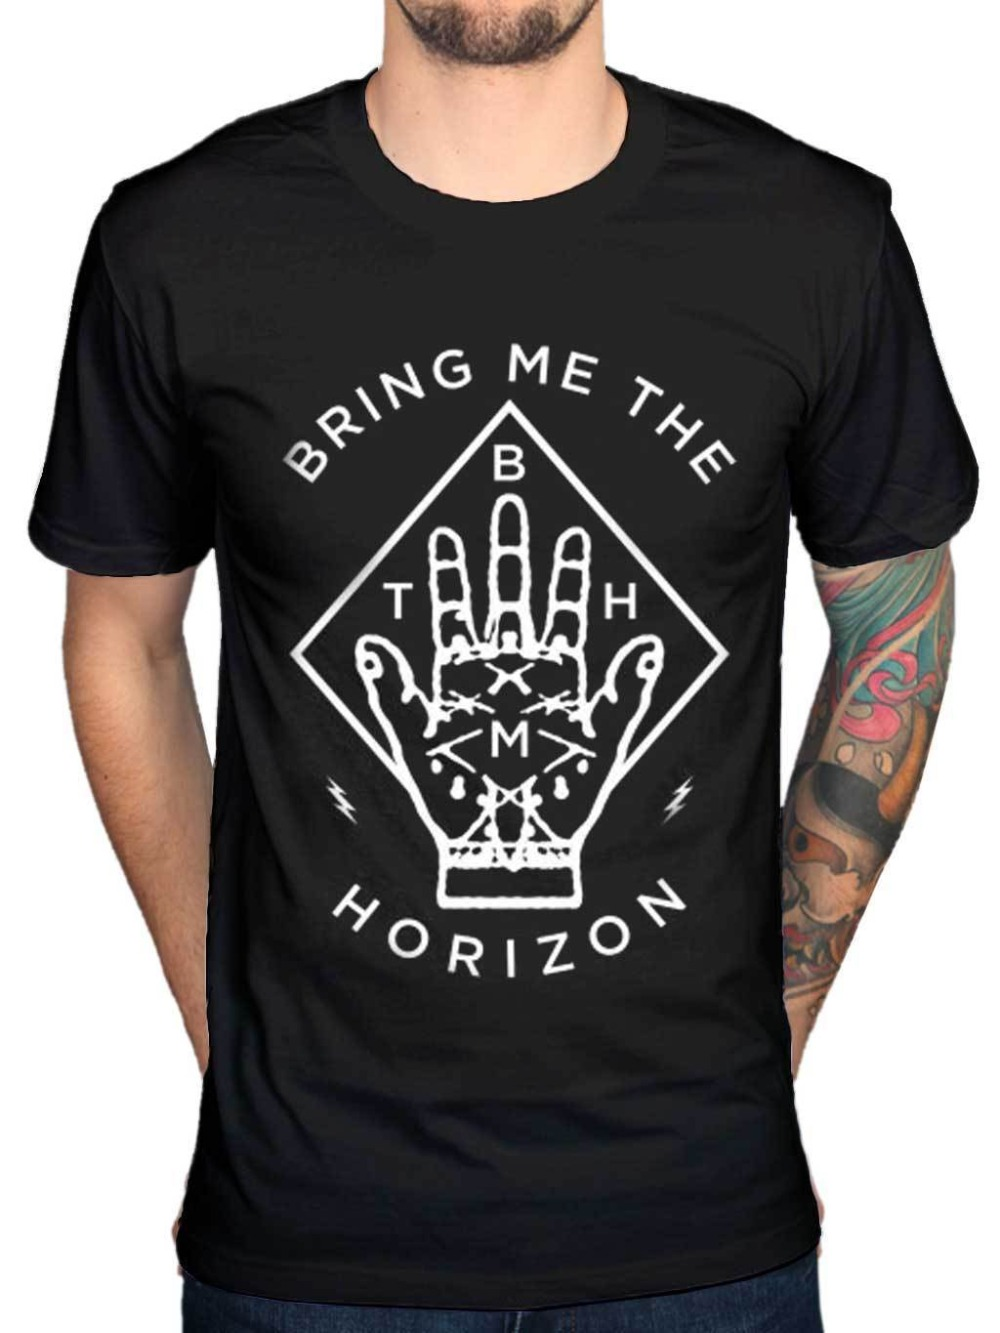 Bring me the horizon diamond hand unisex t shirt band for Which t shirt brand is the best